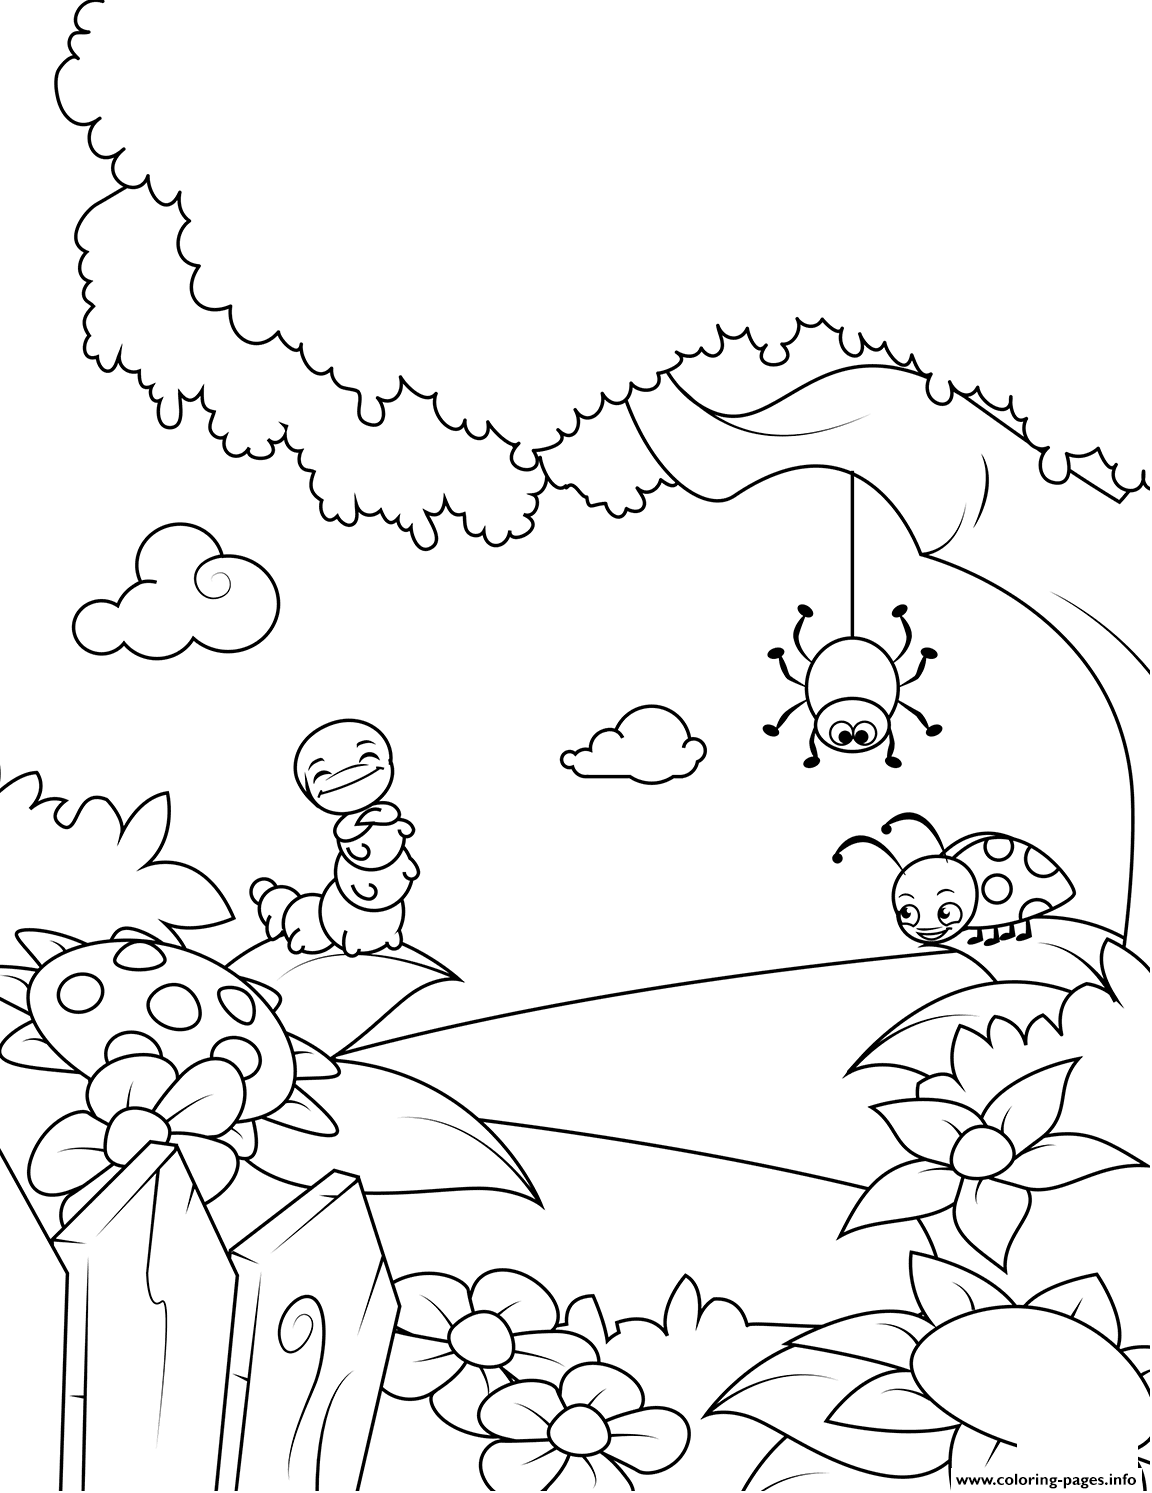 Lovely Insects Rejoice In Spring Warmth Coloring Pages